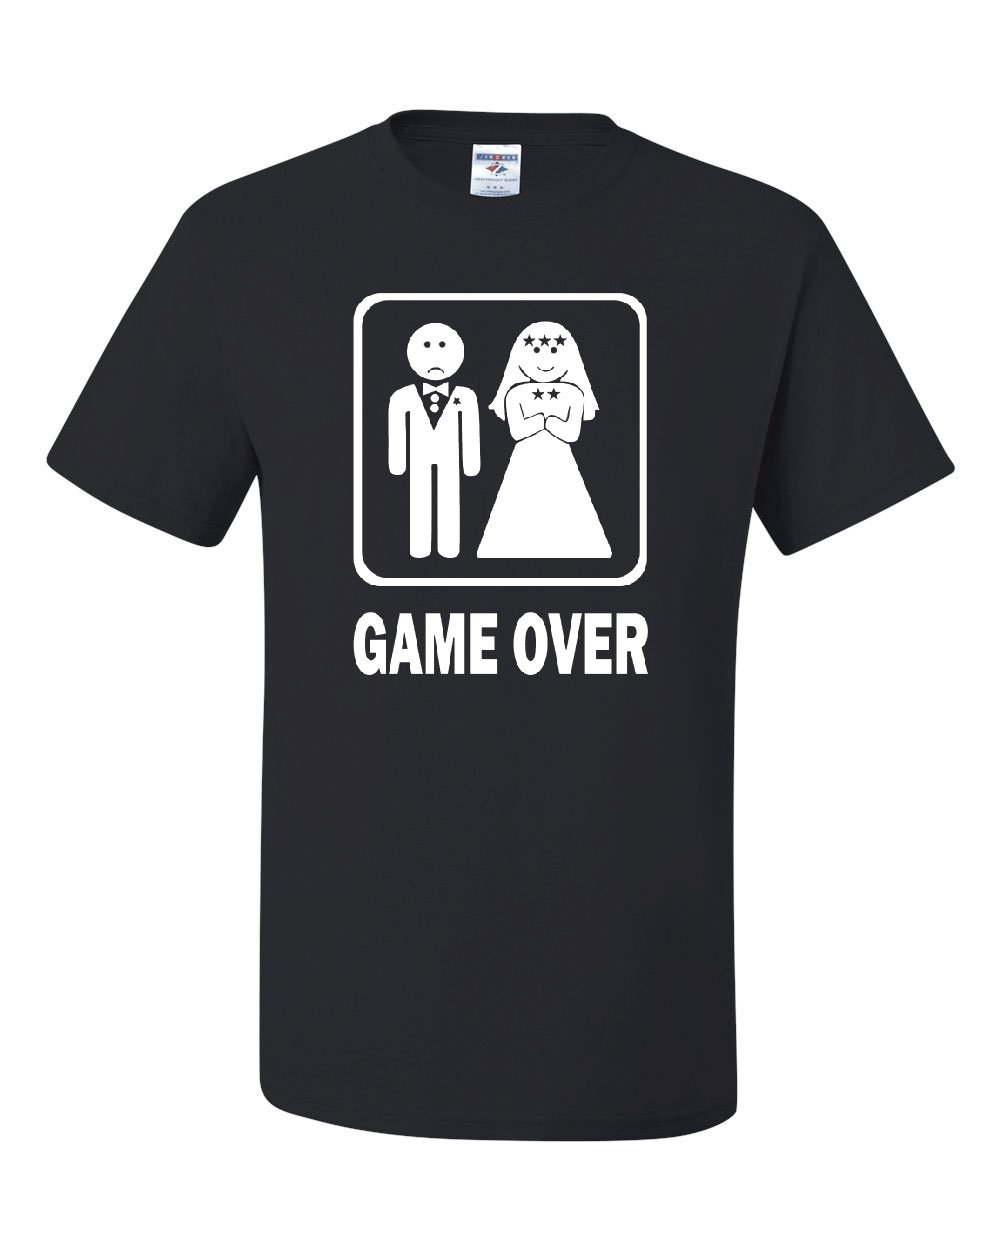 Game Over Funny T-Shirt Groom And Bride Wedding Tee Shirt Black 4XL